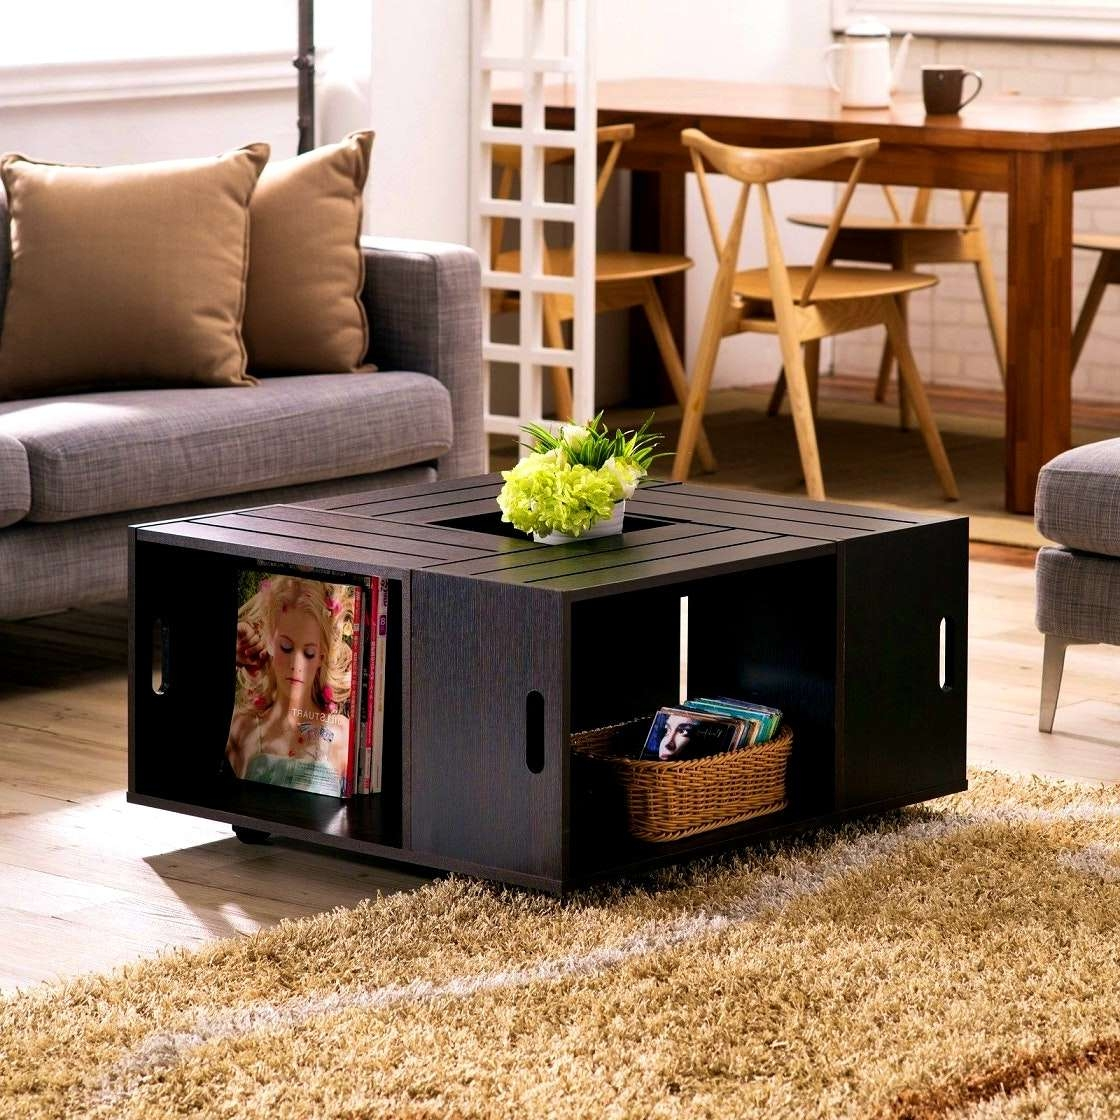 Uncategorized. Stunning Square Coffee Table With Storage Throughout Most Current Square Coffee Tables With Storage Cubes (Gallery 2 of 20)